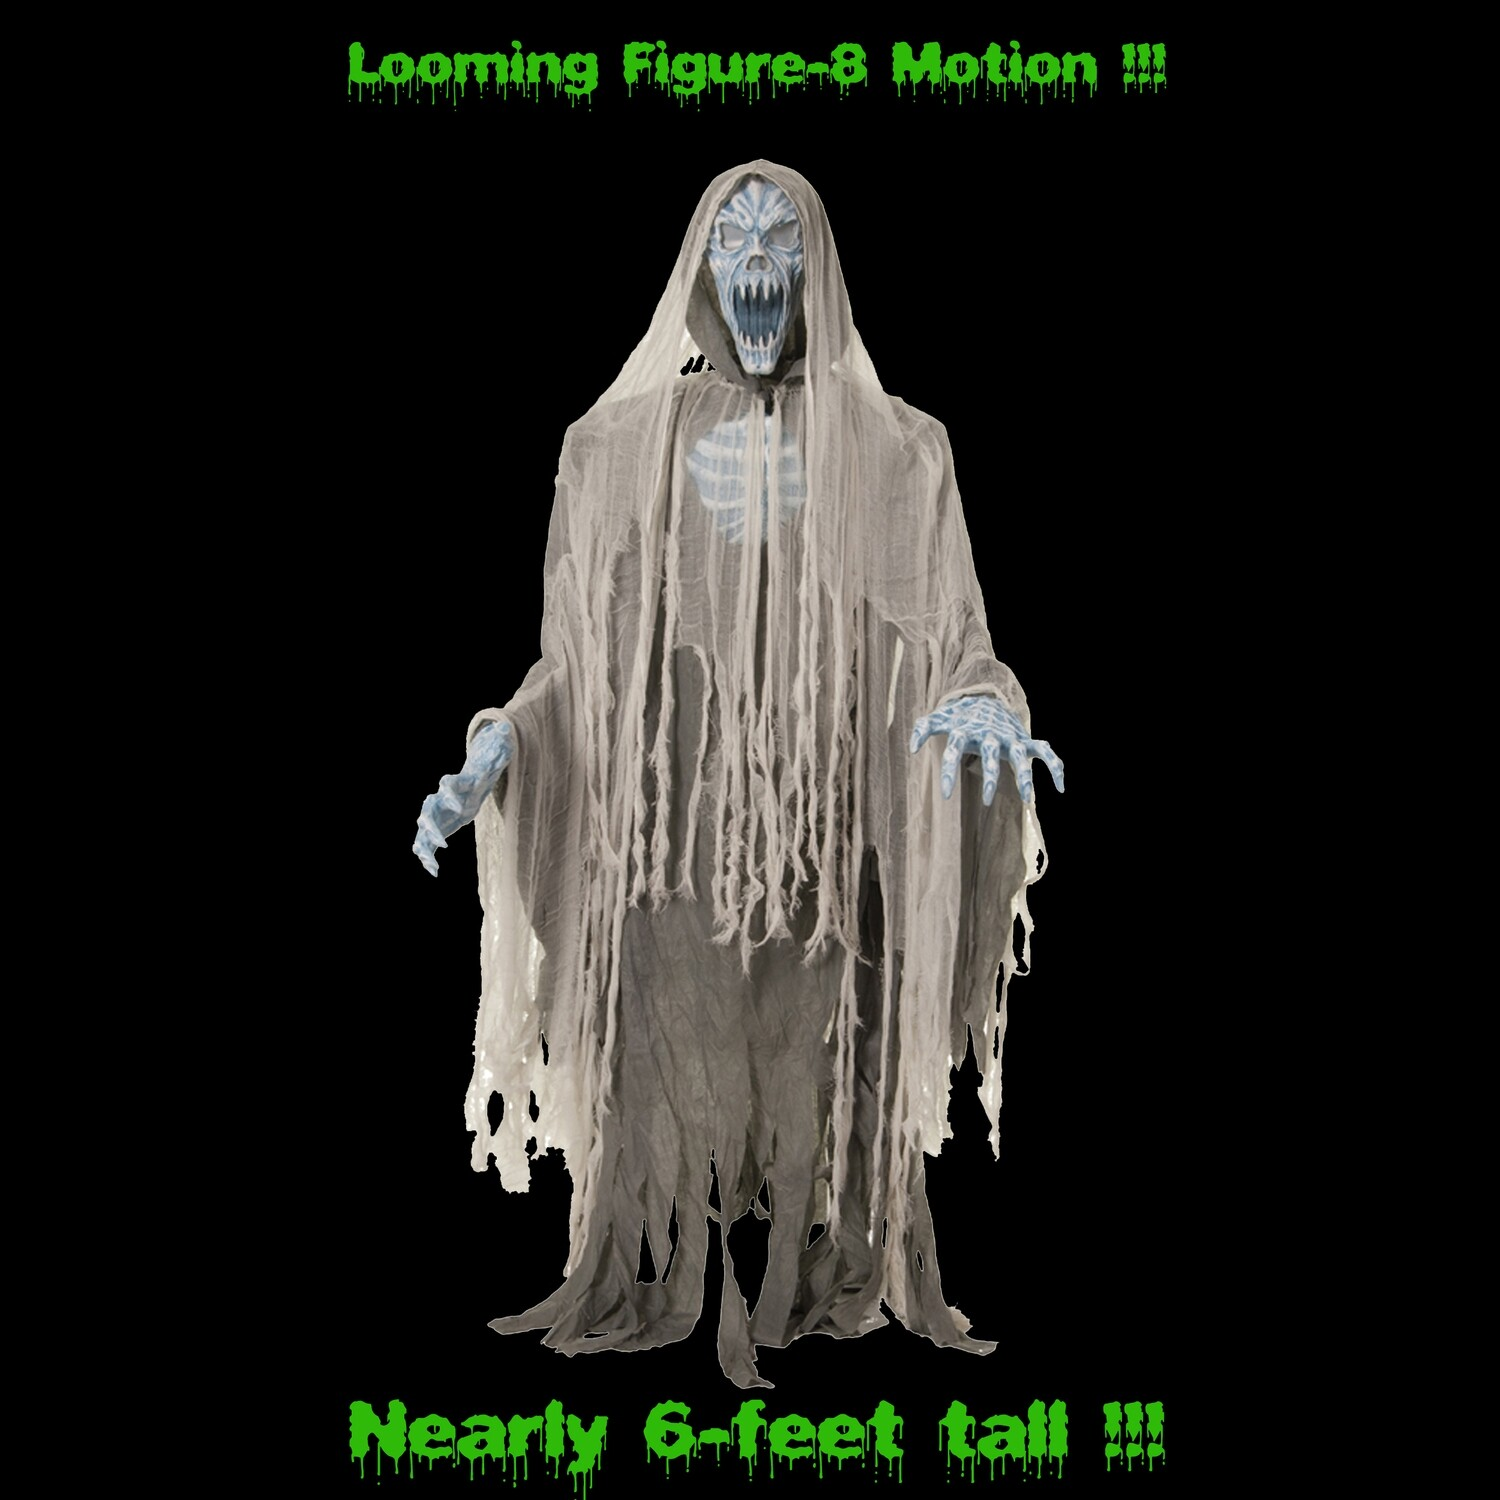 Life Size Animated EVIL ENTITY REAPER ZOMBIE Haunted House